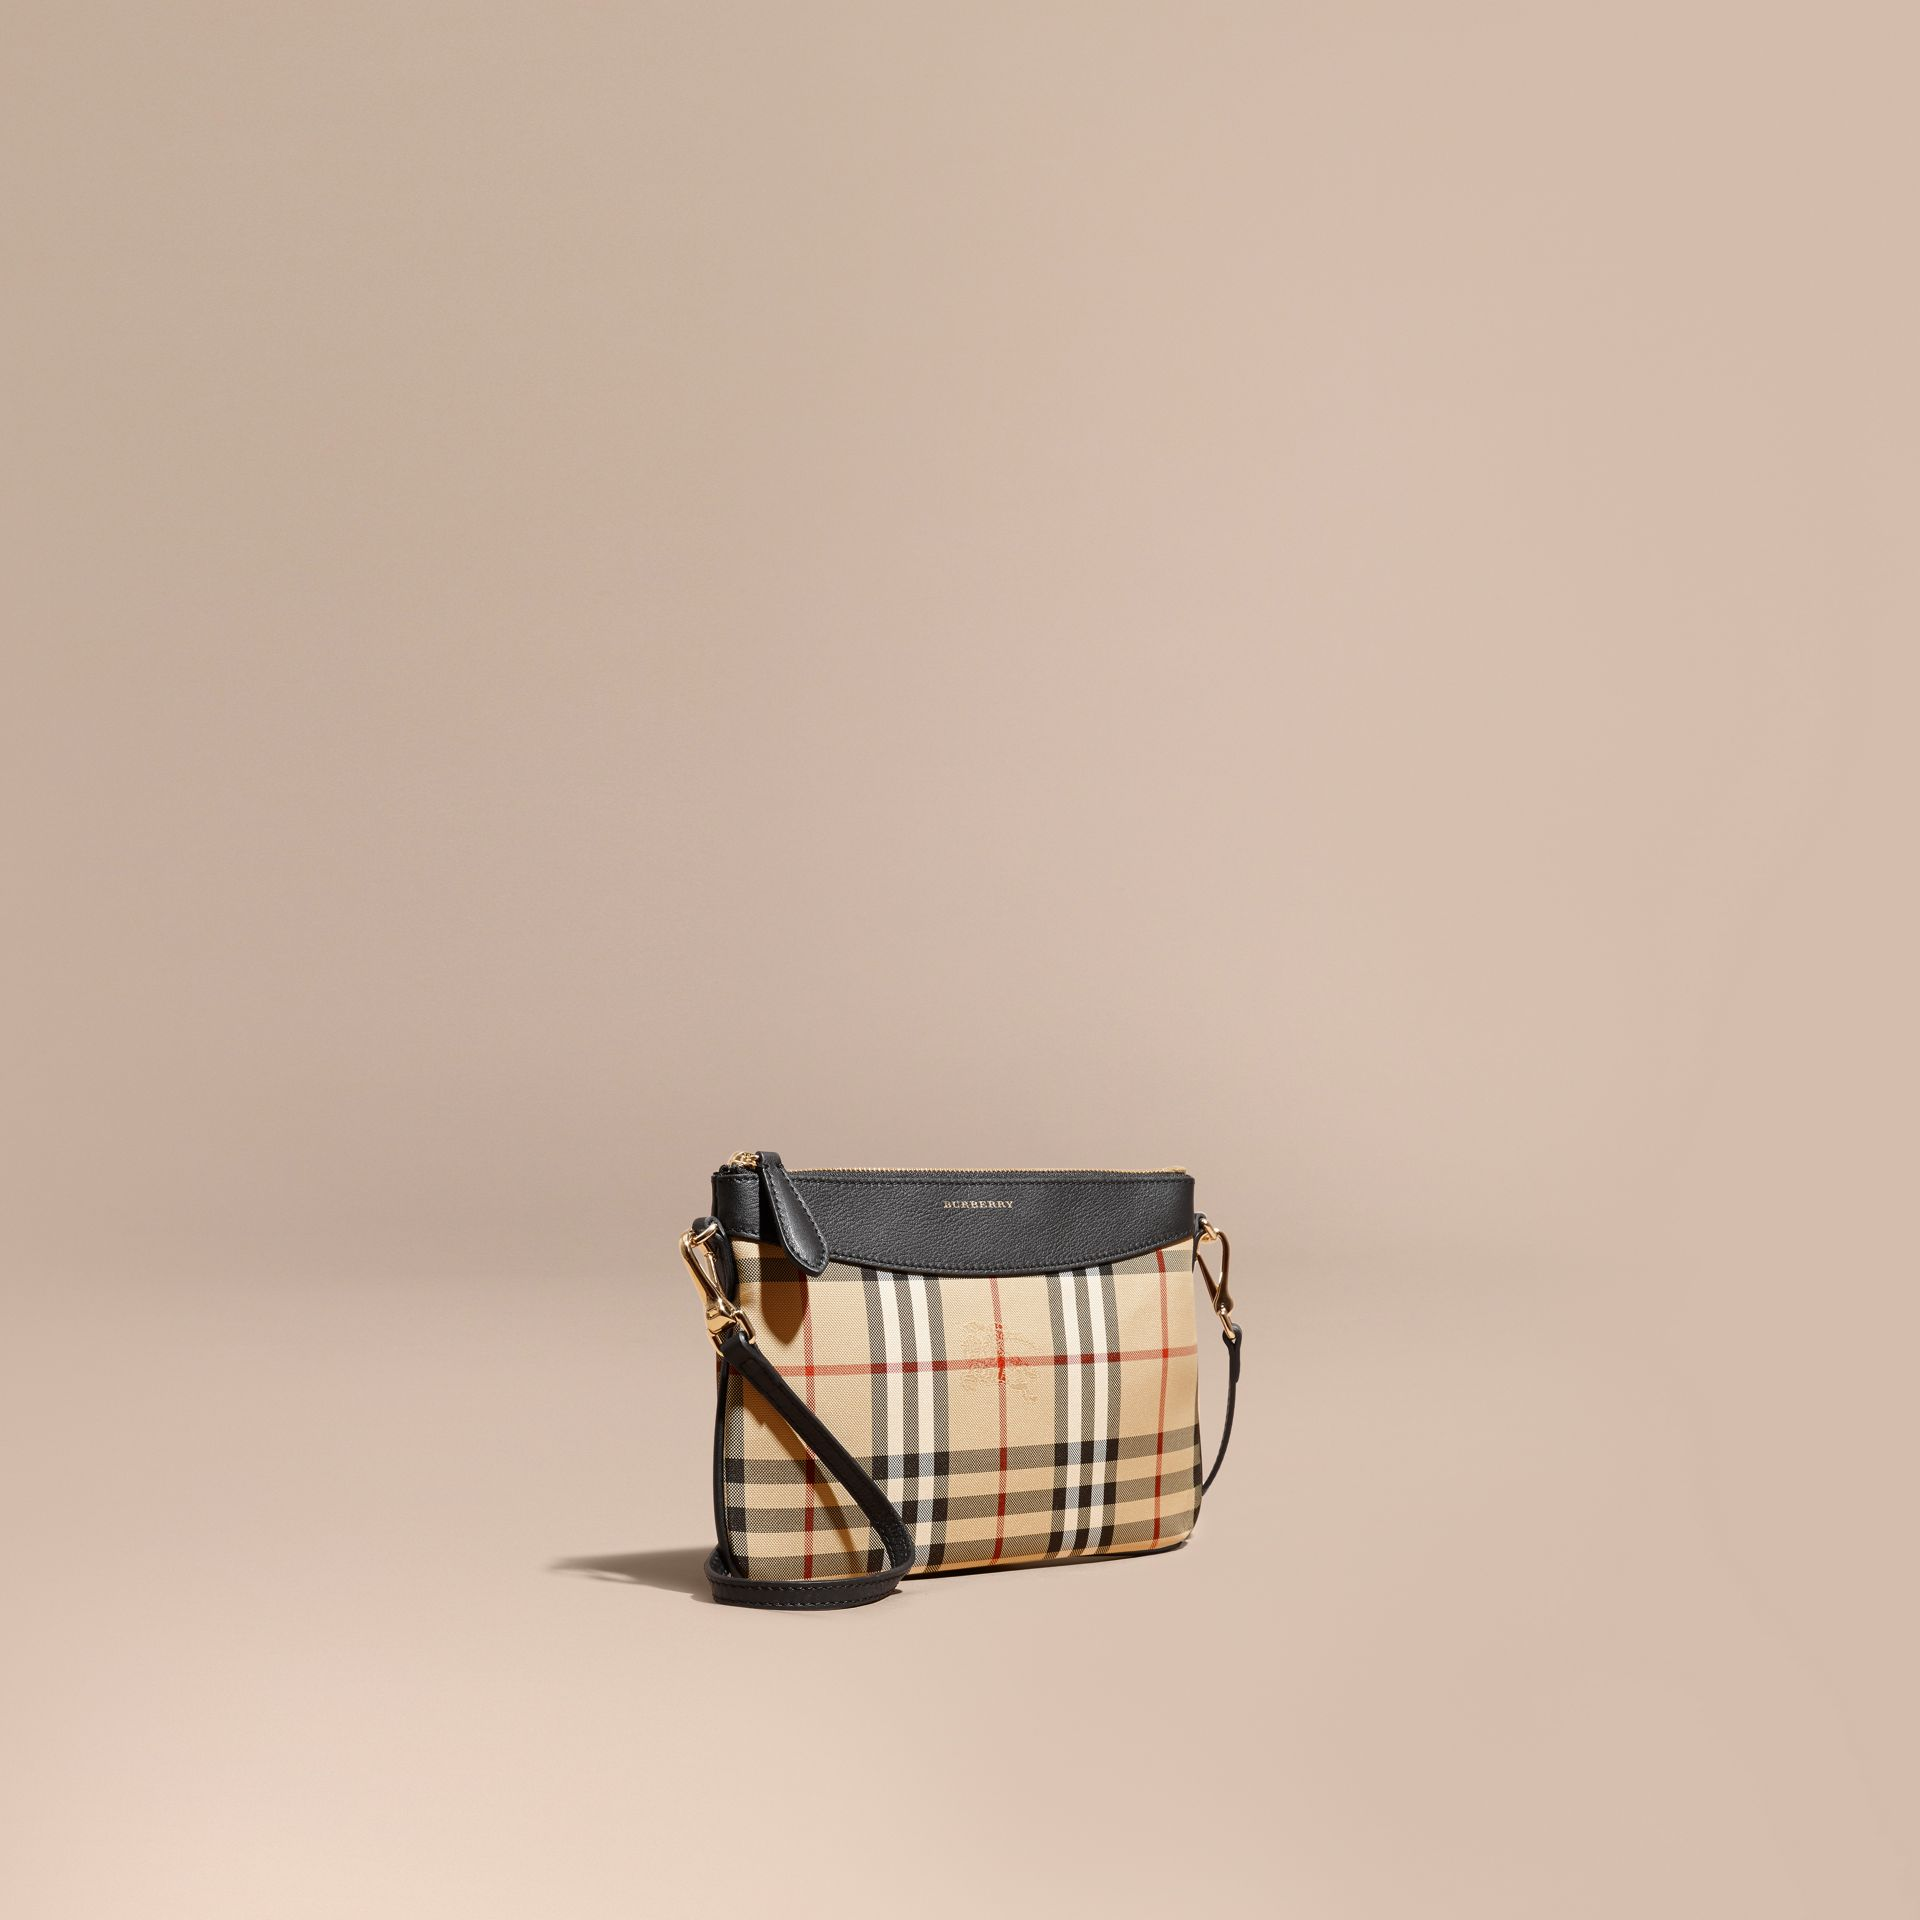 Horseferry Check and Leather Clutch Bag in Black - Women | Burberry - gallery image 1